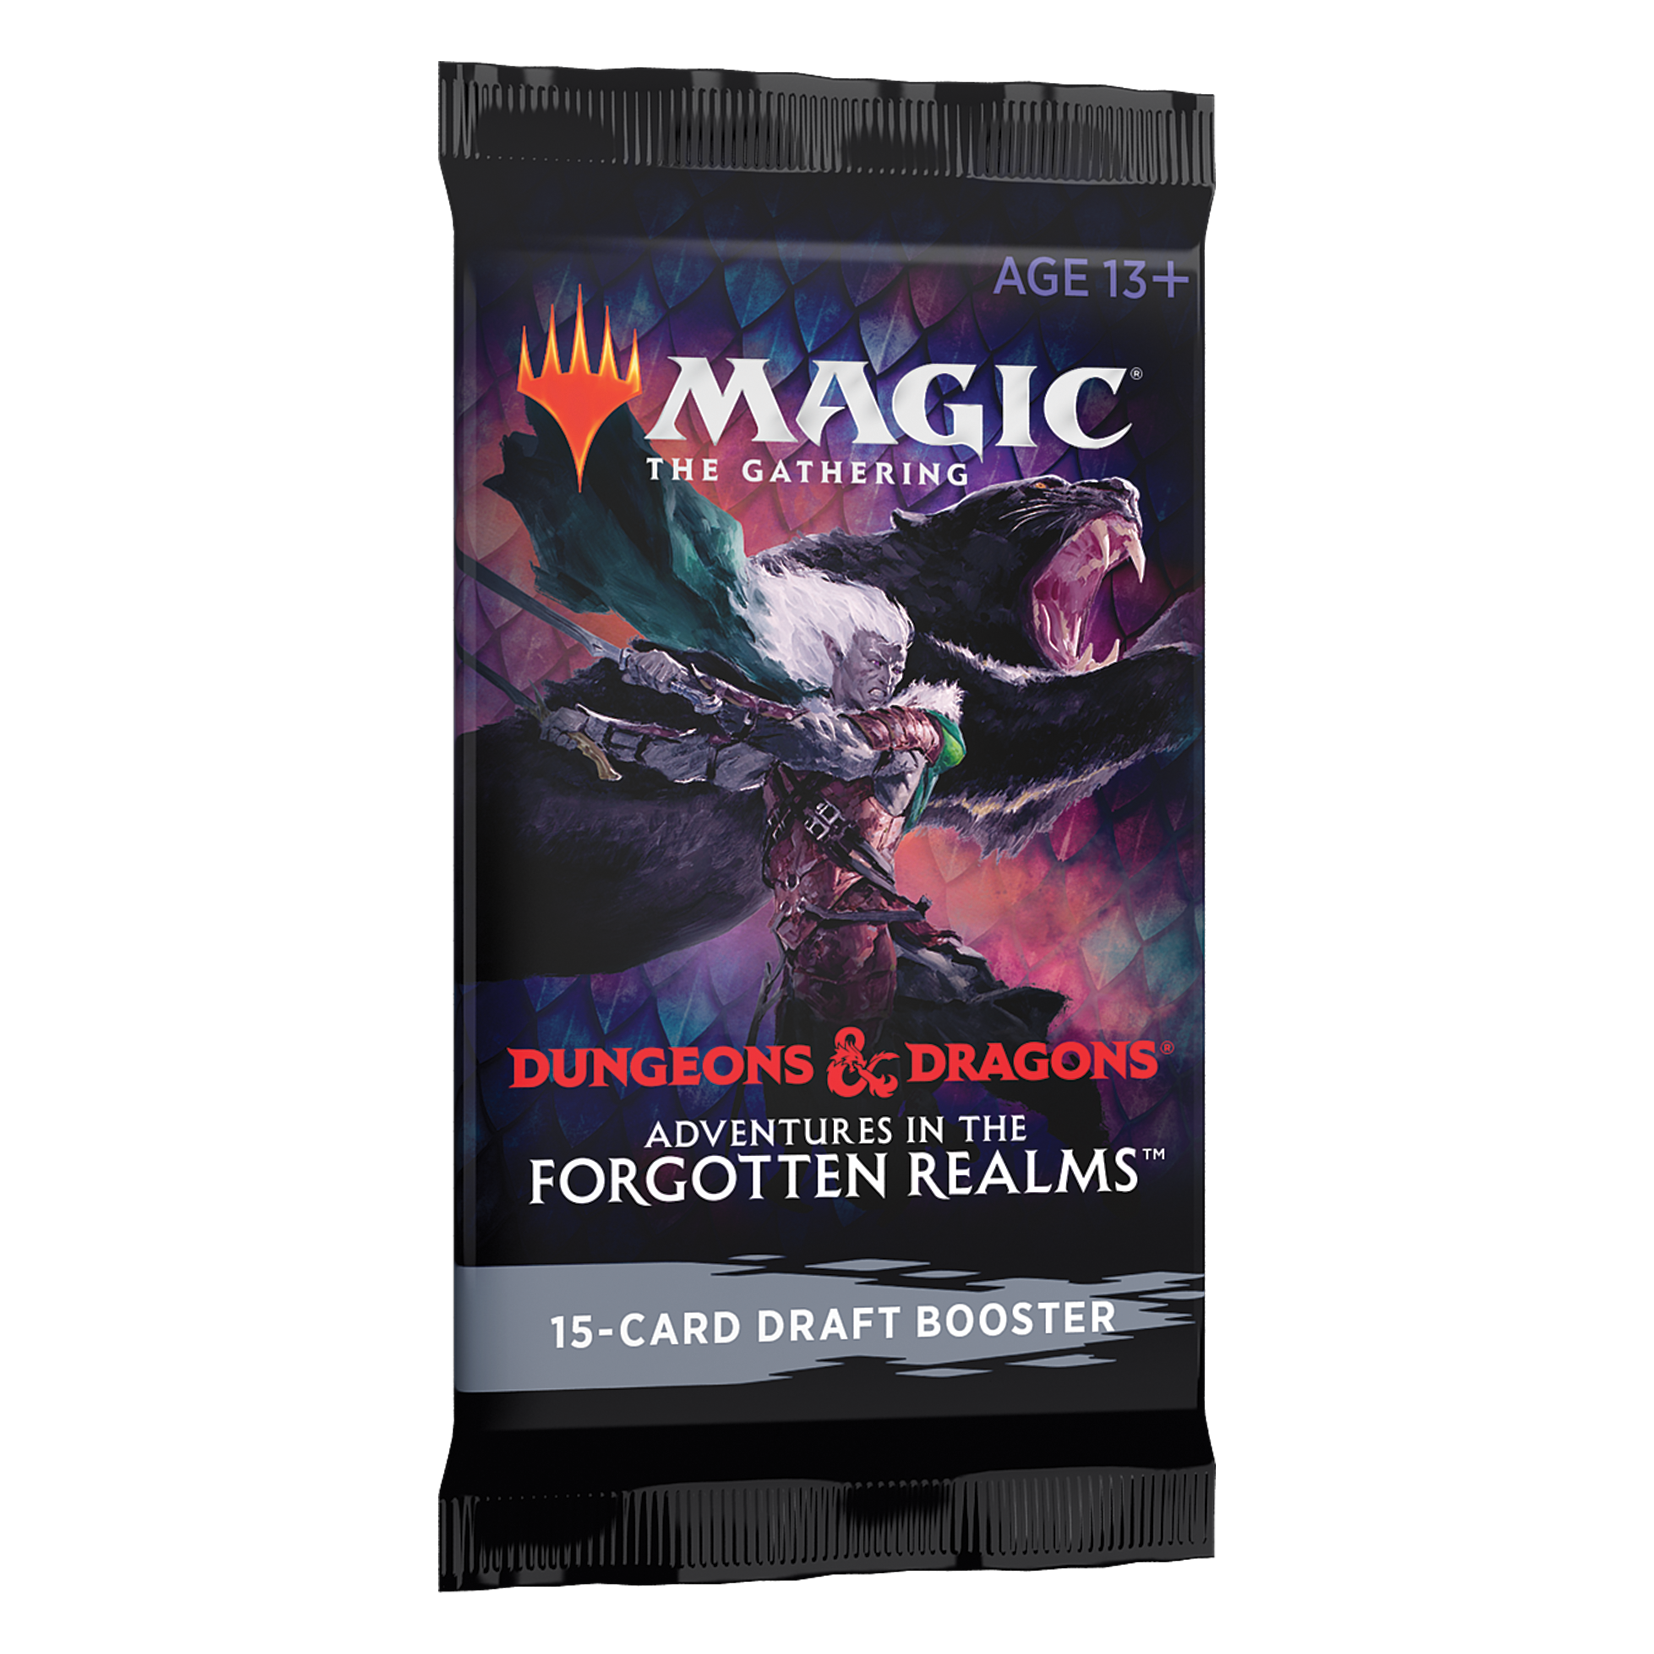 Dungeons & Dragons Adventures in the Forgotten Realms Draft Booster